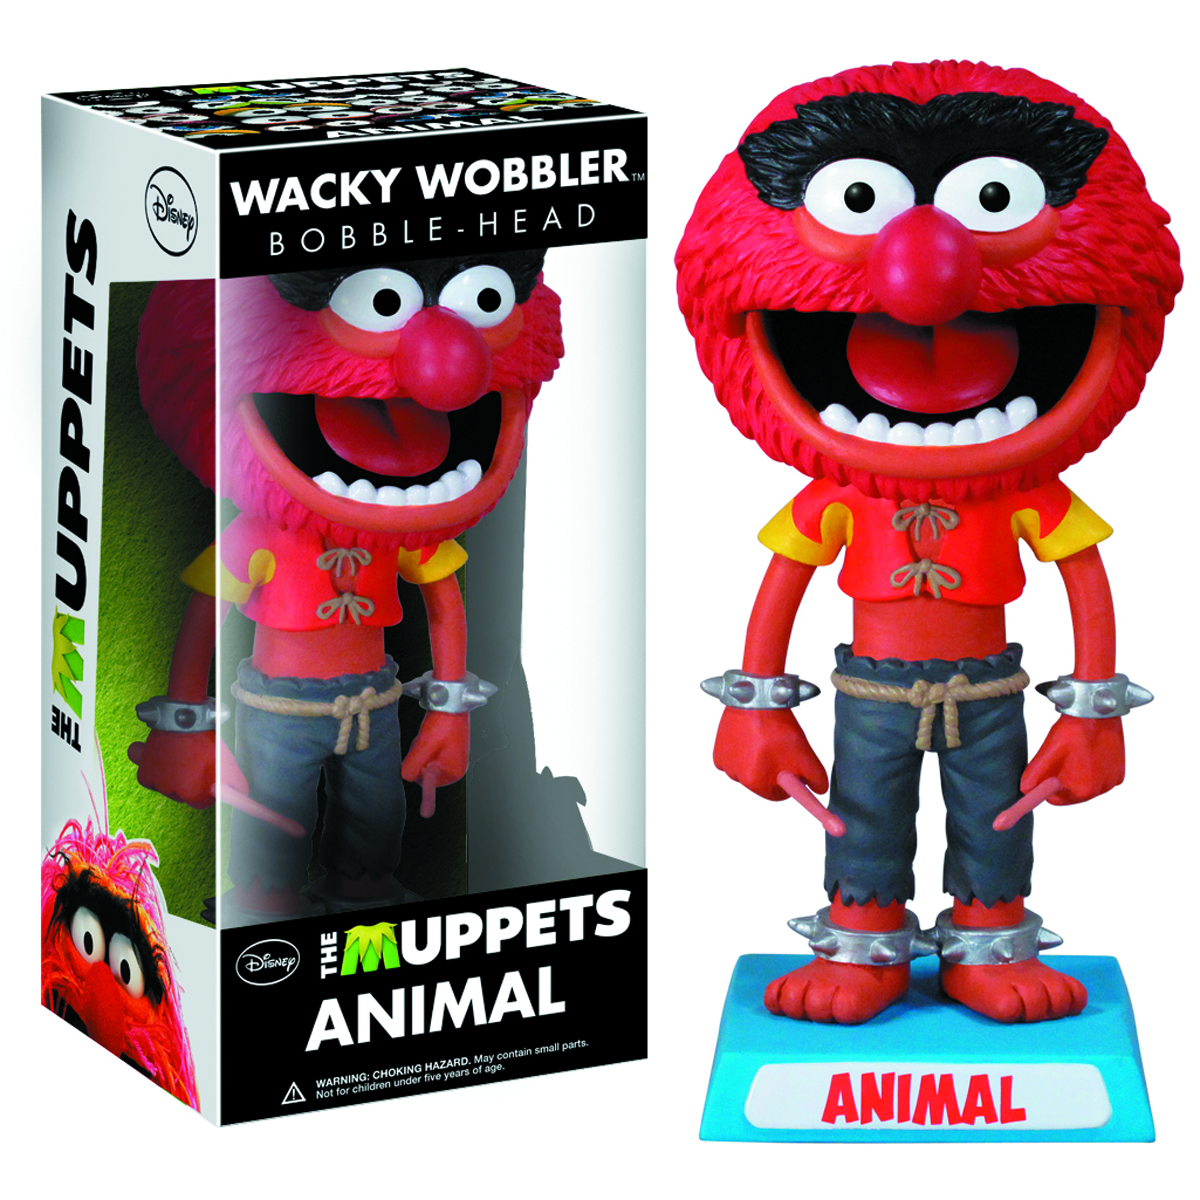 MUPPETS ANIMAL WACKY WOBBLER